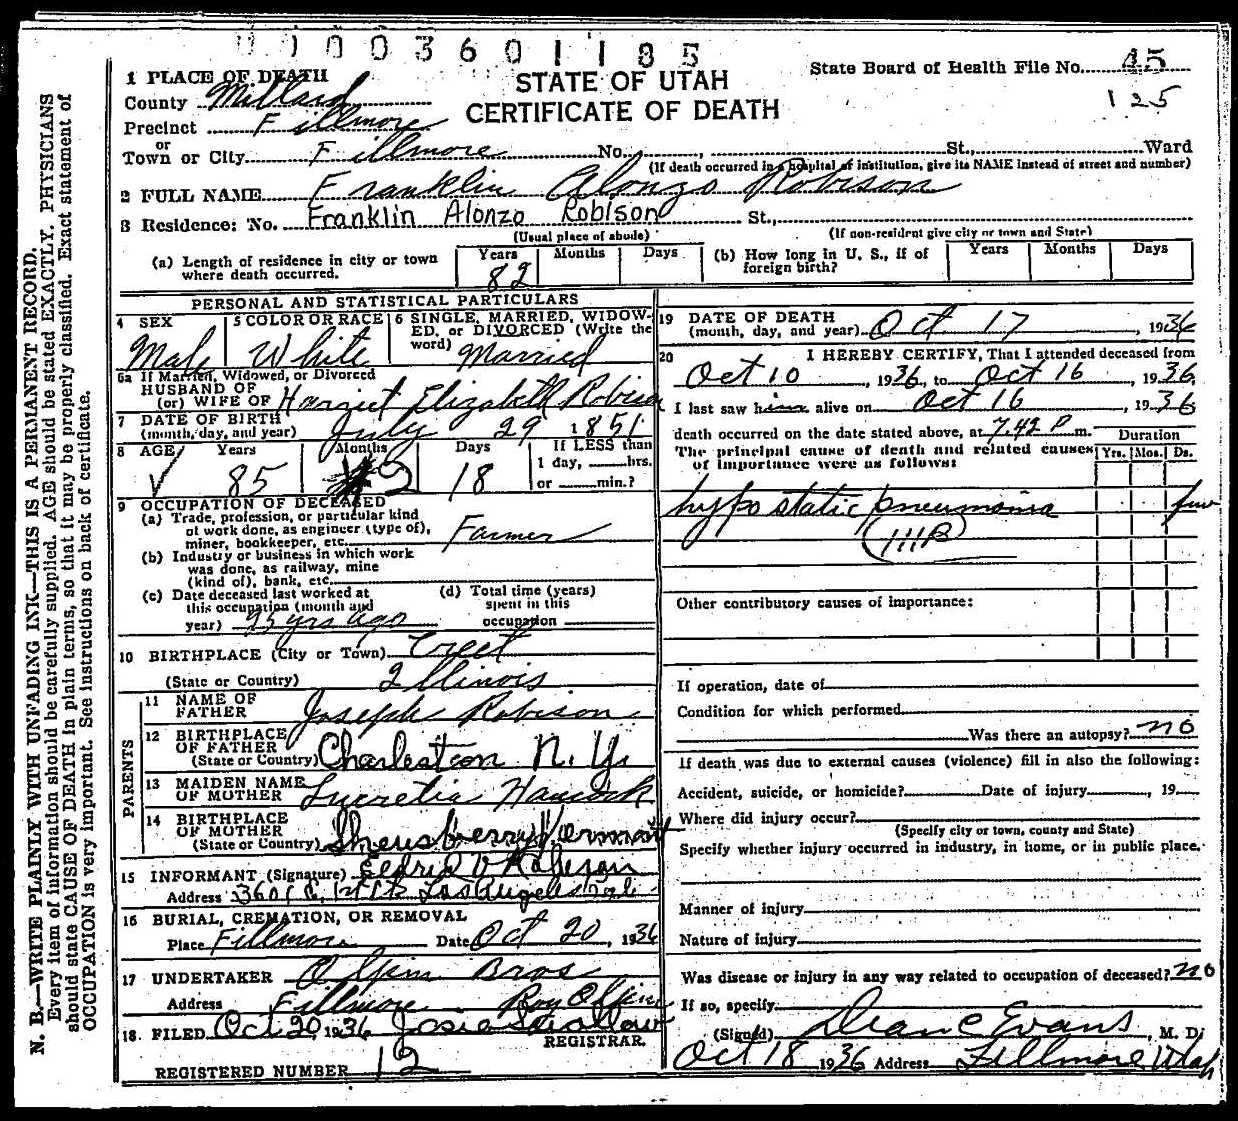 death certificate of franklin alonzo robison